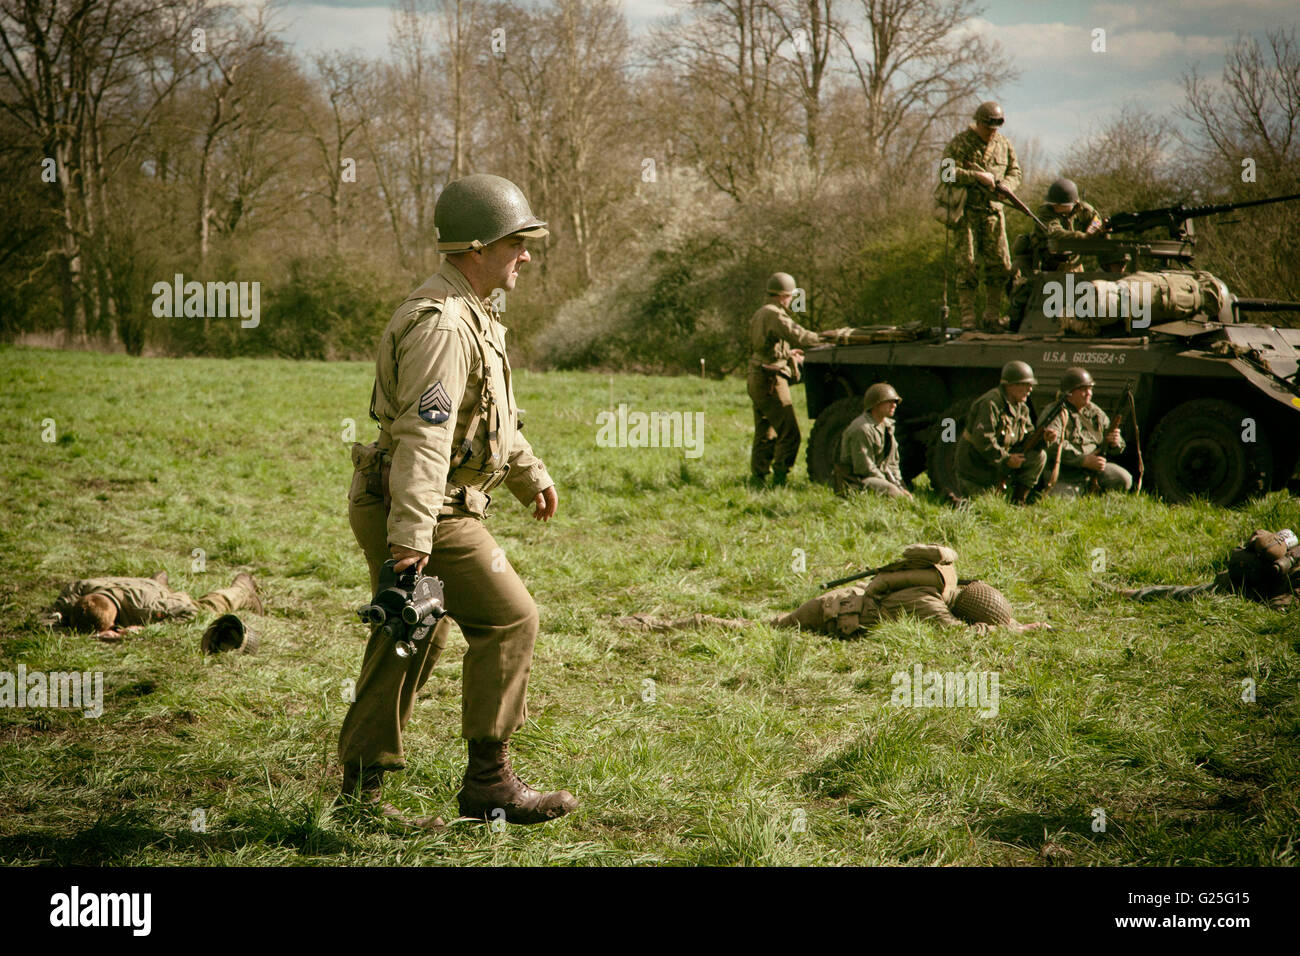 A world war two re-enactment in Oxfordshire, England. An allied war correspondent walks the battlefield. - Stock Image